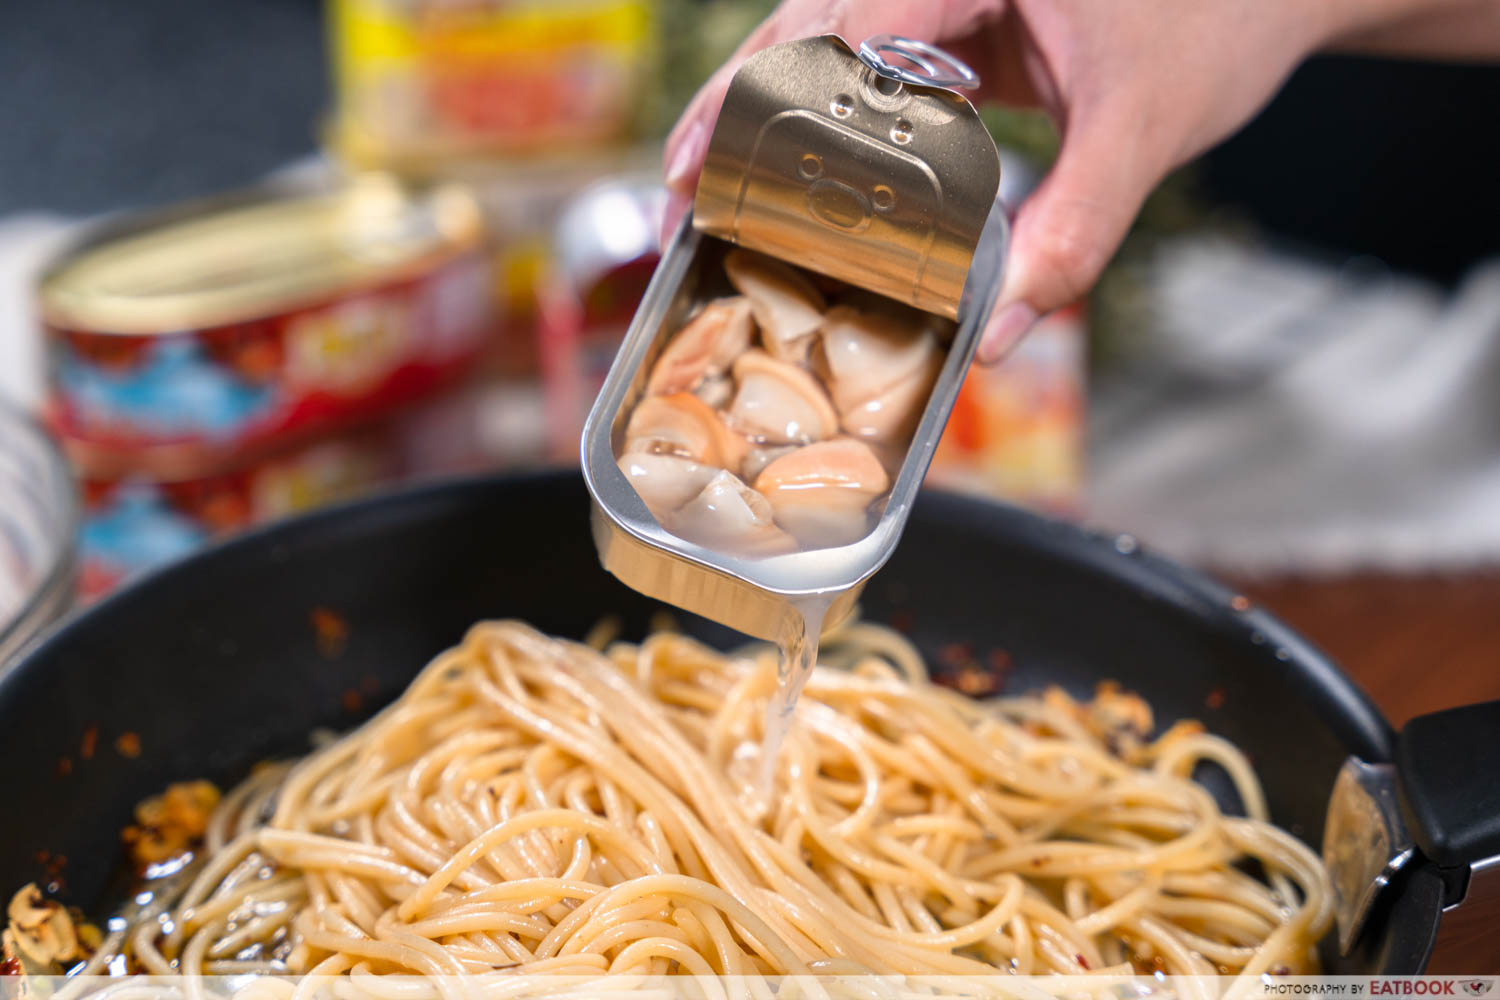 Canned food recipes - canned clams